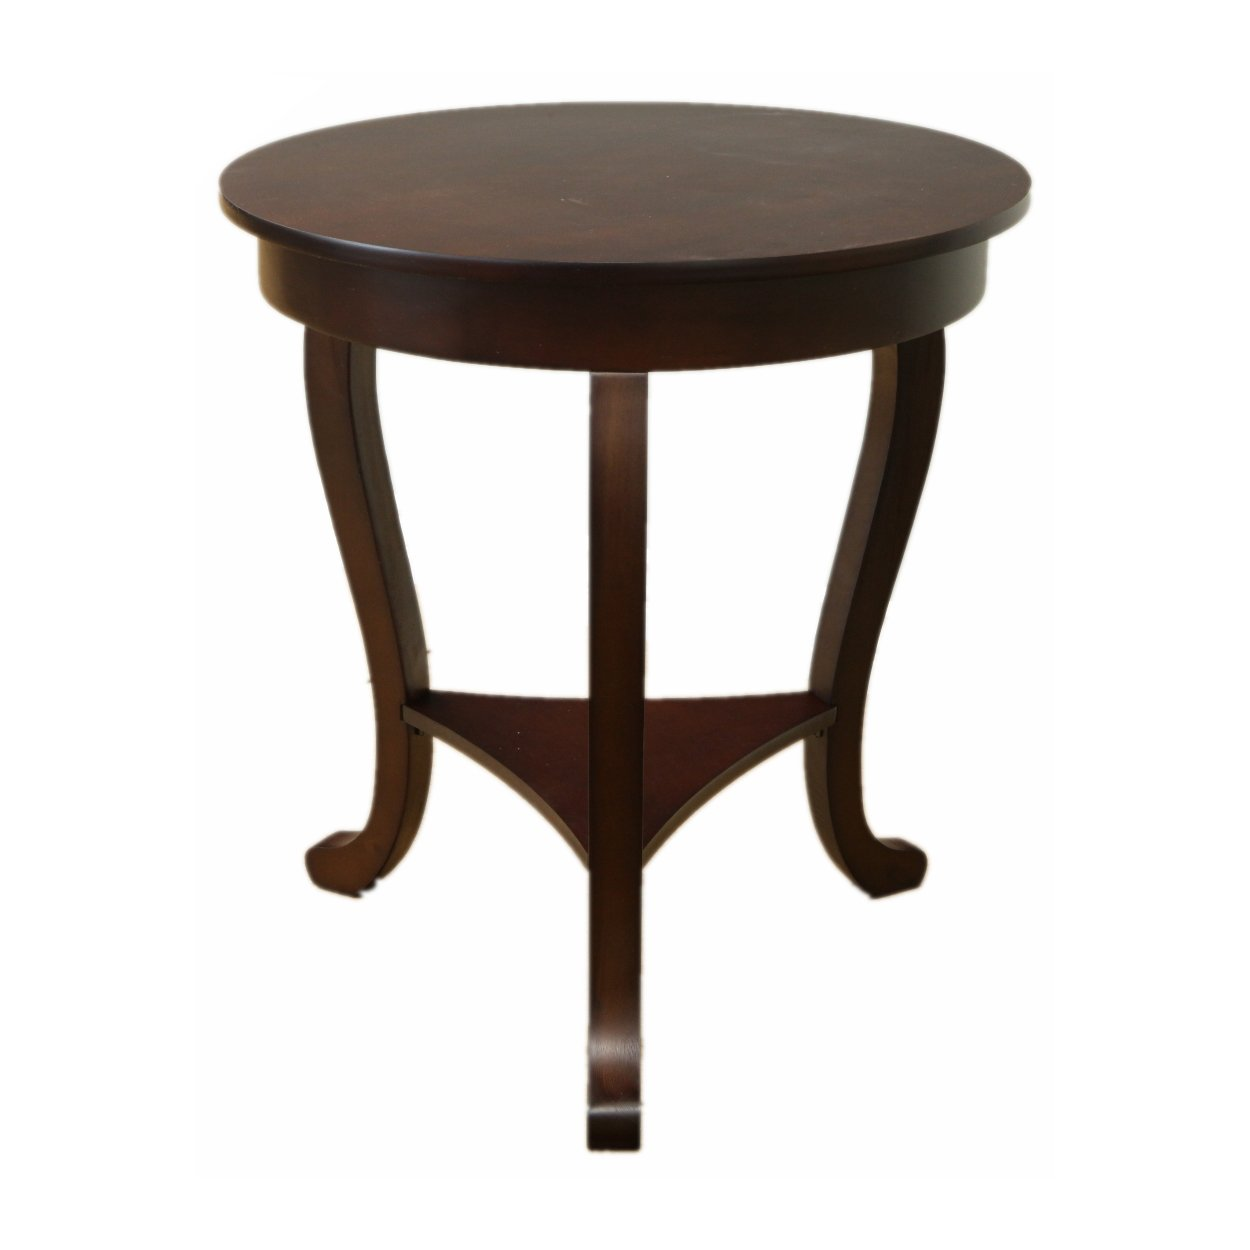 megaware furniture large burl accent table atg skinny wood round tables marble top pub set oversized armchair behind sofa cast iron parasol base yellow dragonfly tiffany style